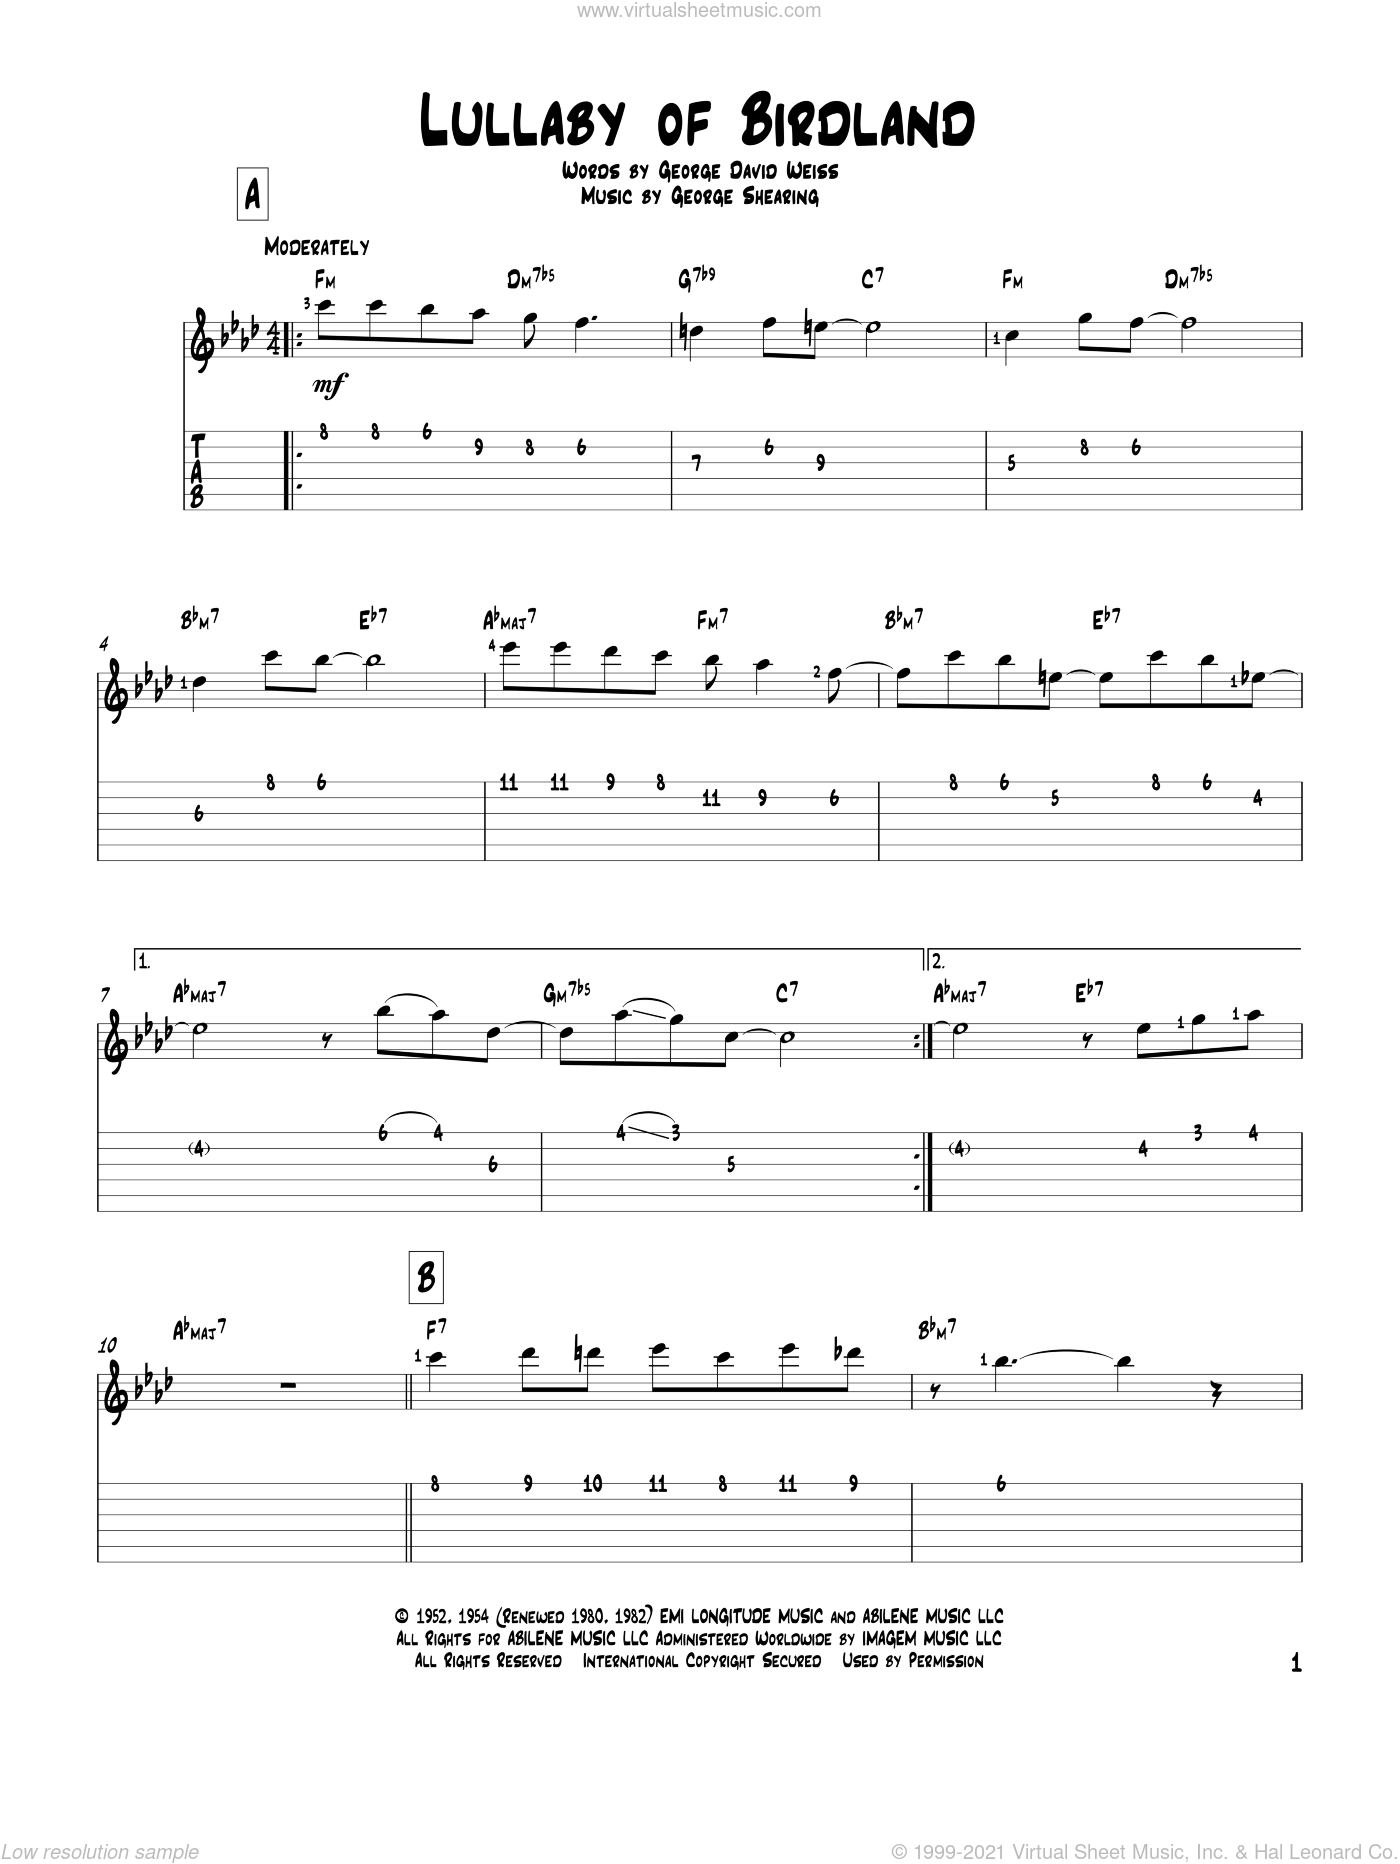 Lullaby Of Birdland sheet music for guitar solo by George David Weiss and George Shearing. Score Image Preview.